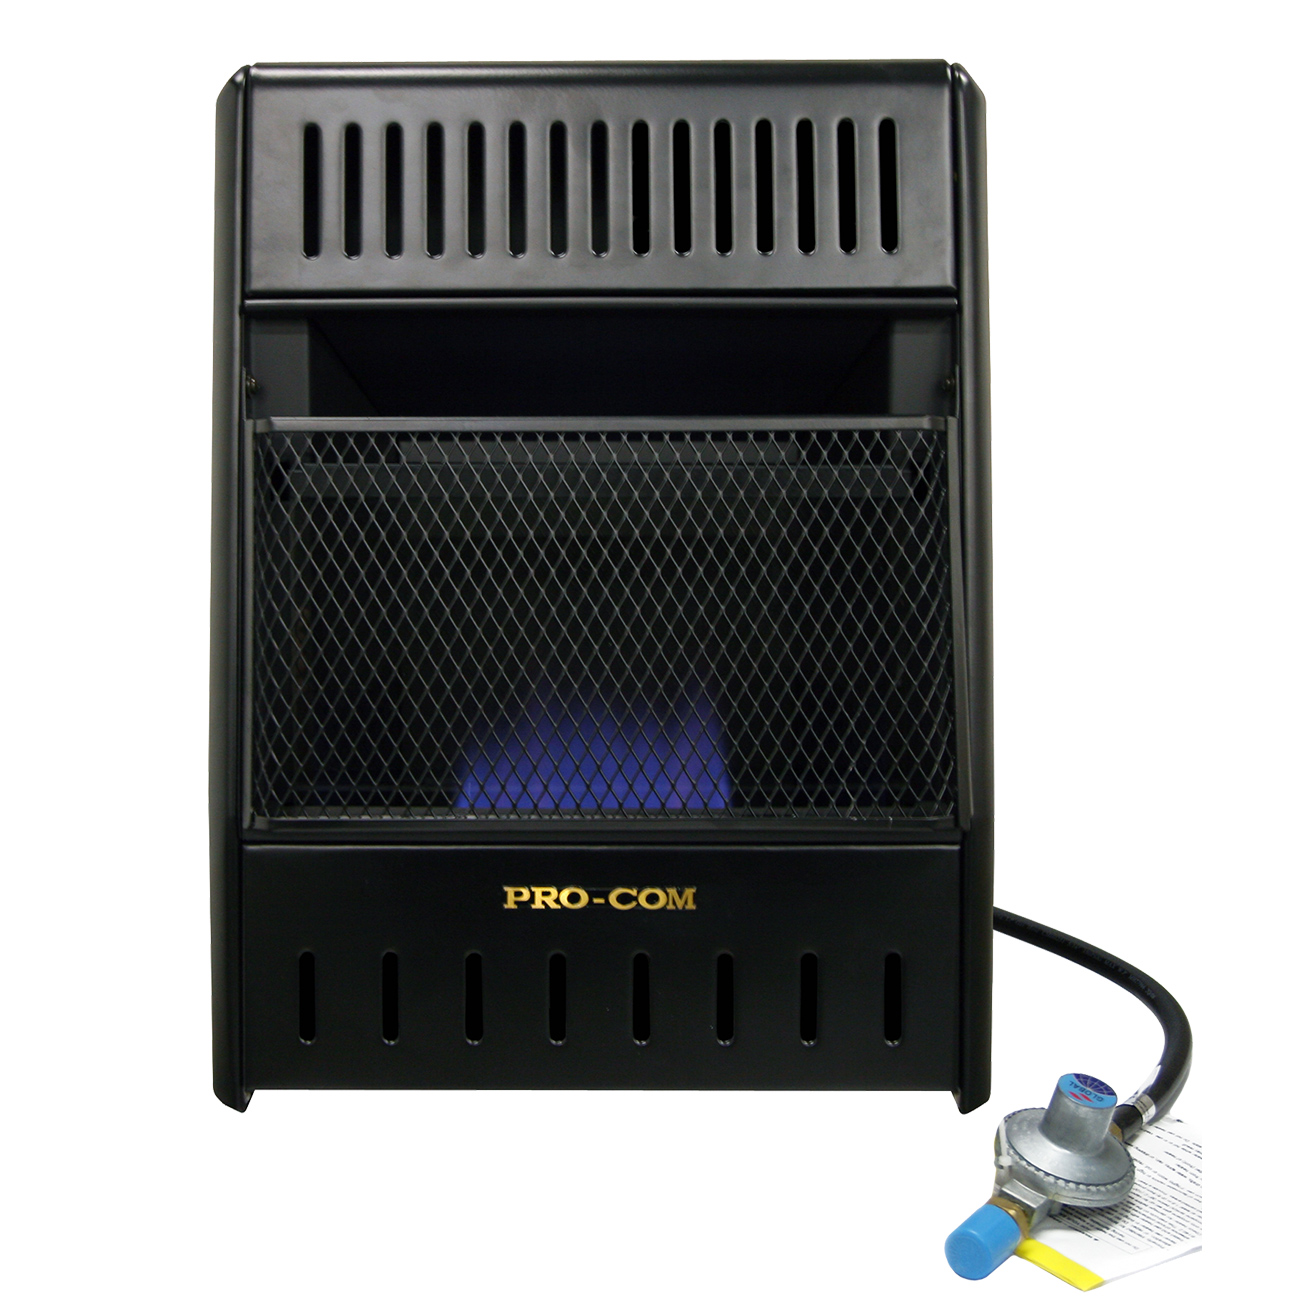 Ventless Blue Flame Heaters 8